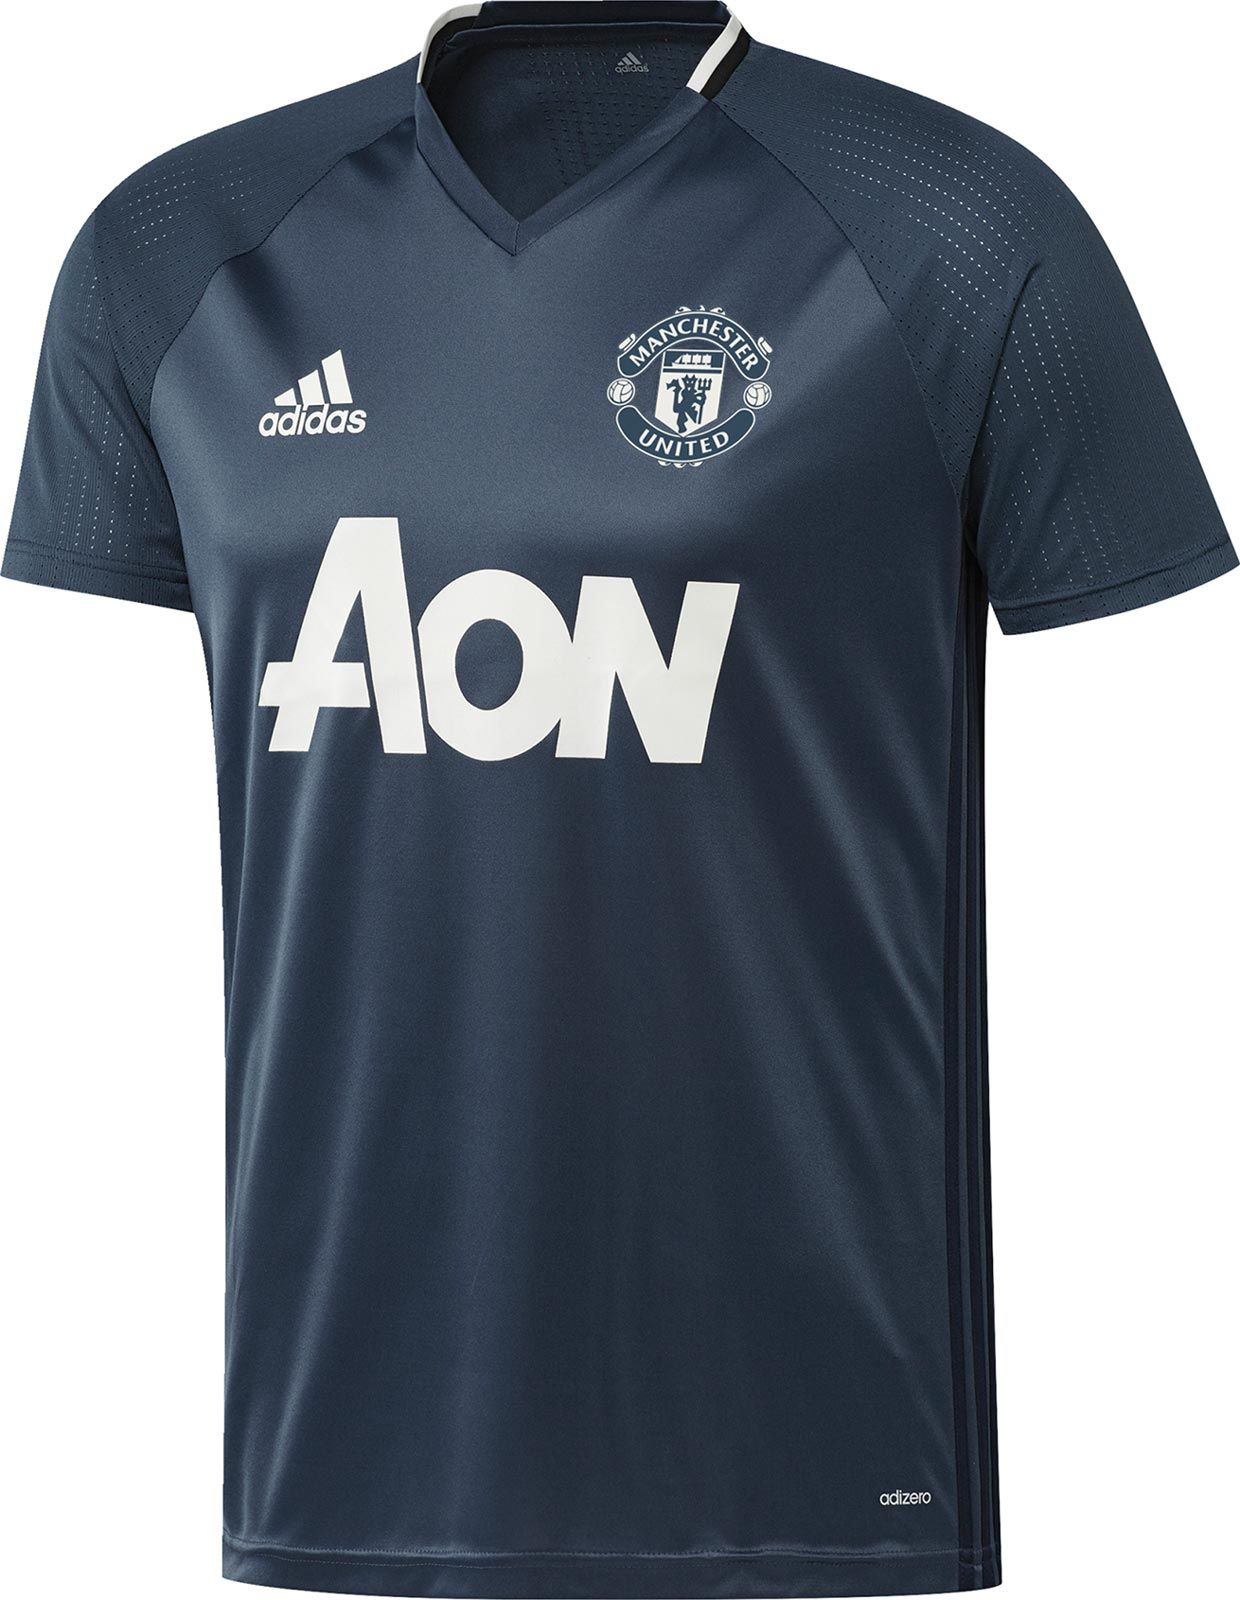 detailed look 762c0 7cec2 Image result for united training jersey | jersey ...